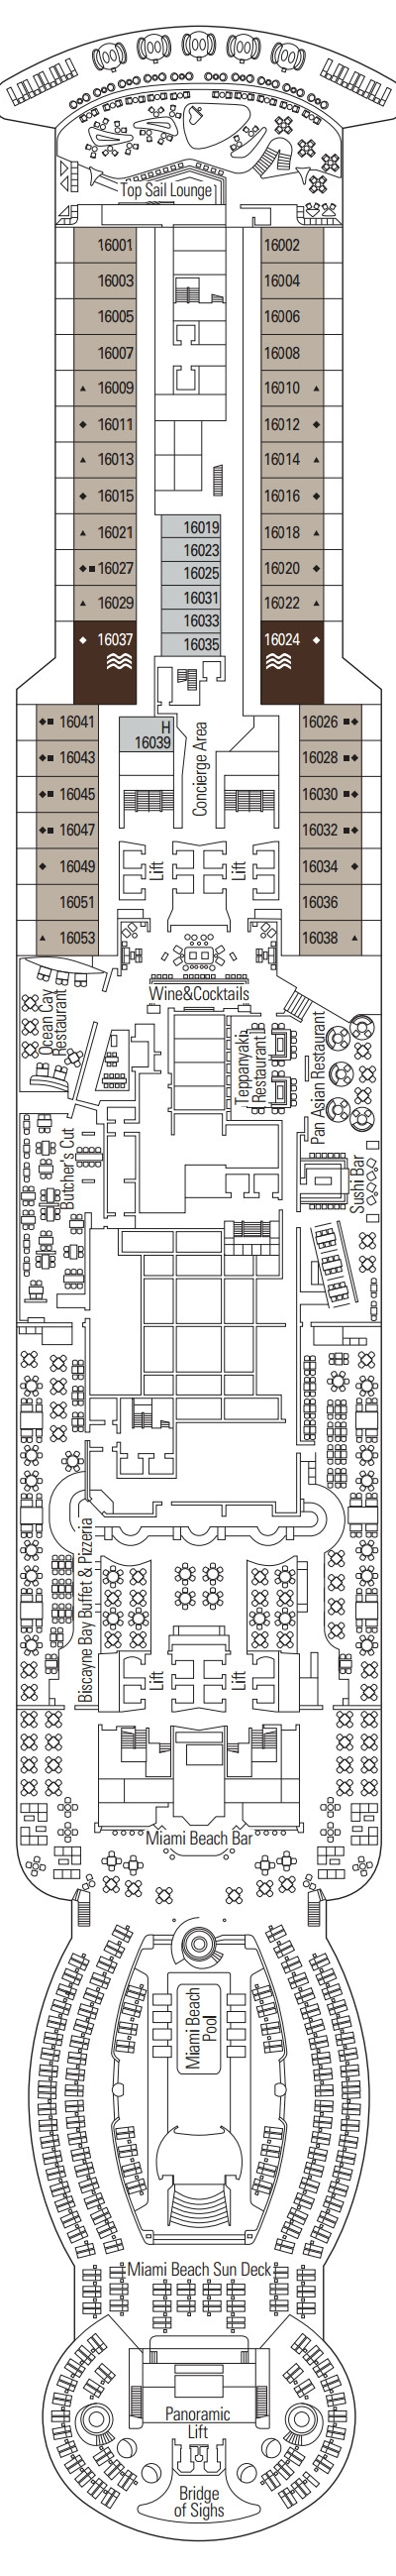 MSC Seaside Deck 16 layout